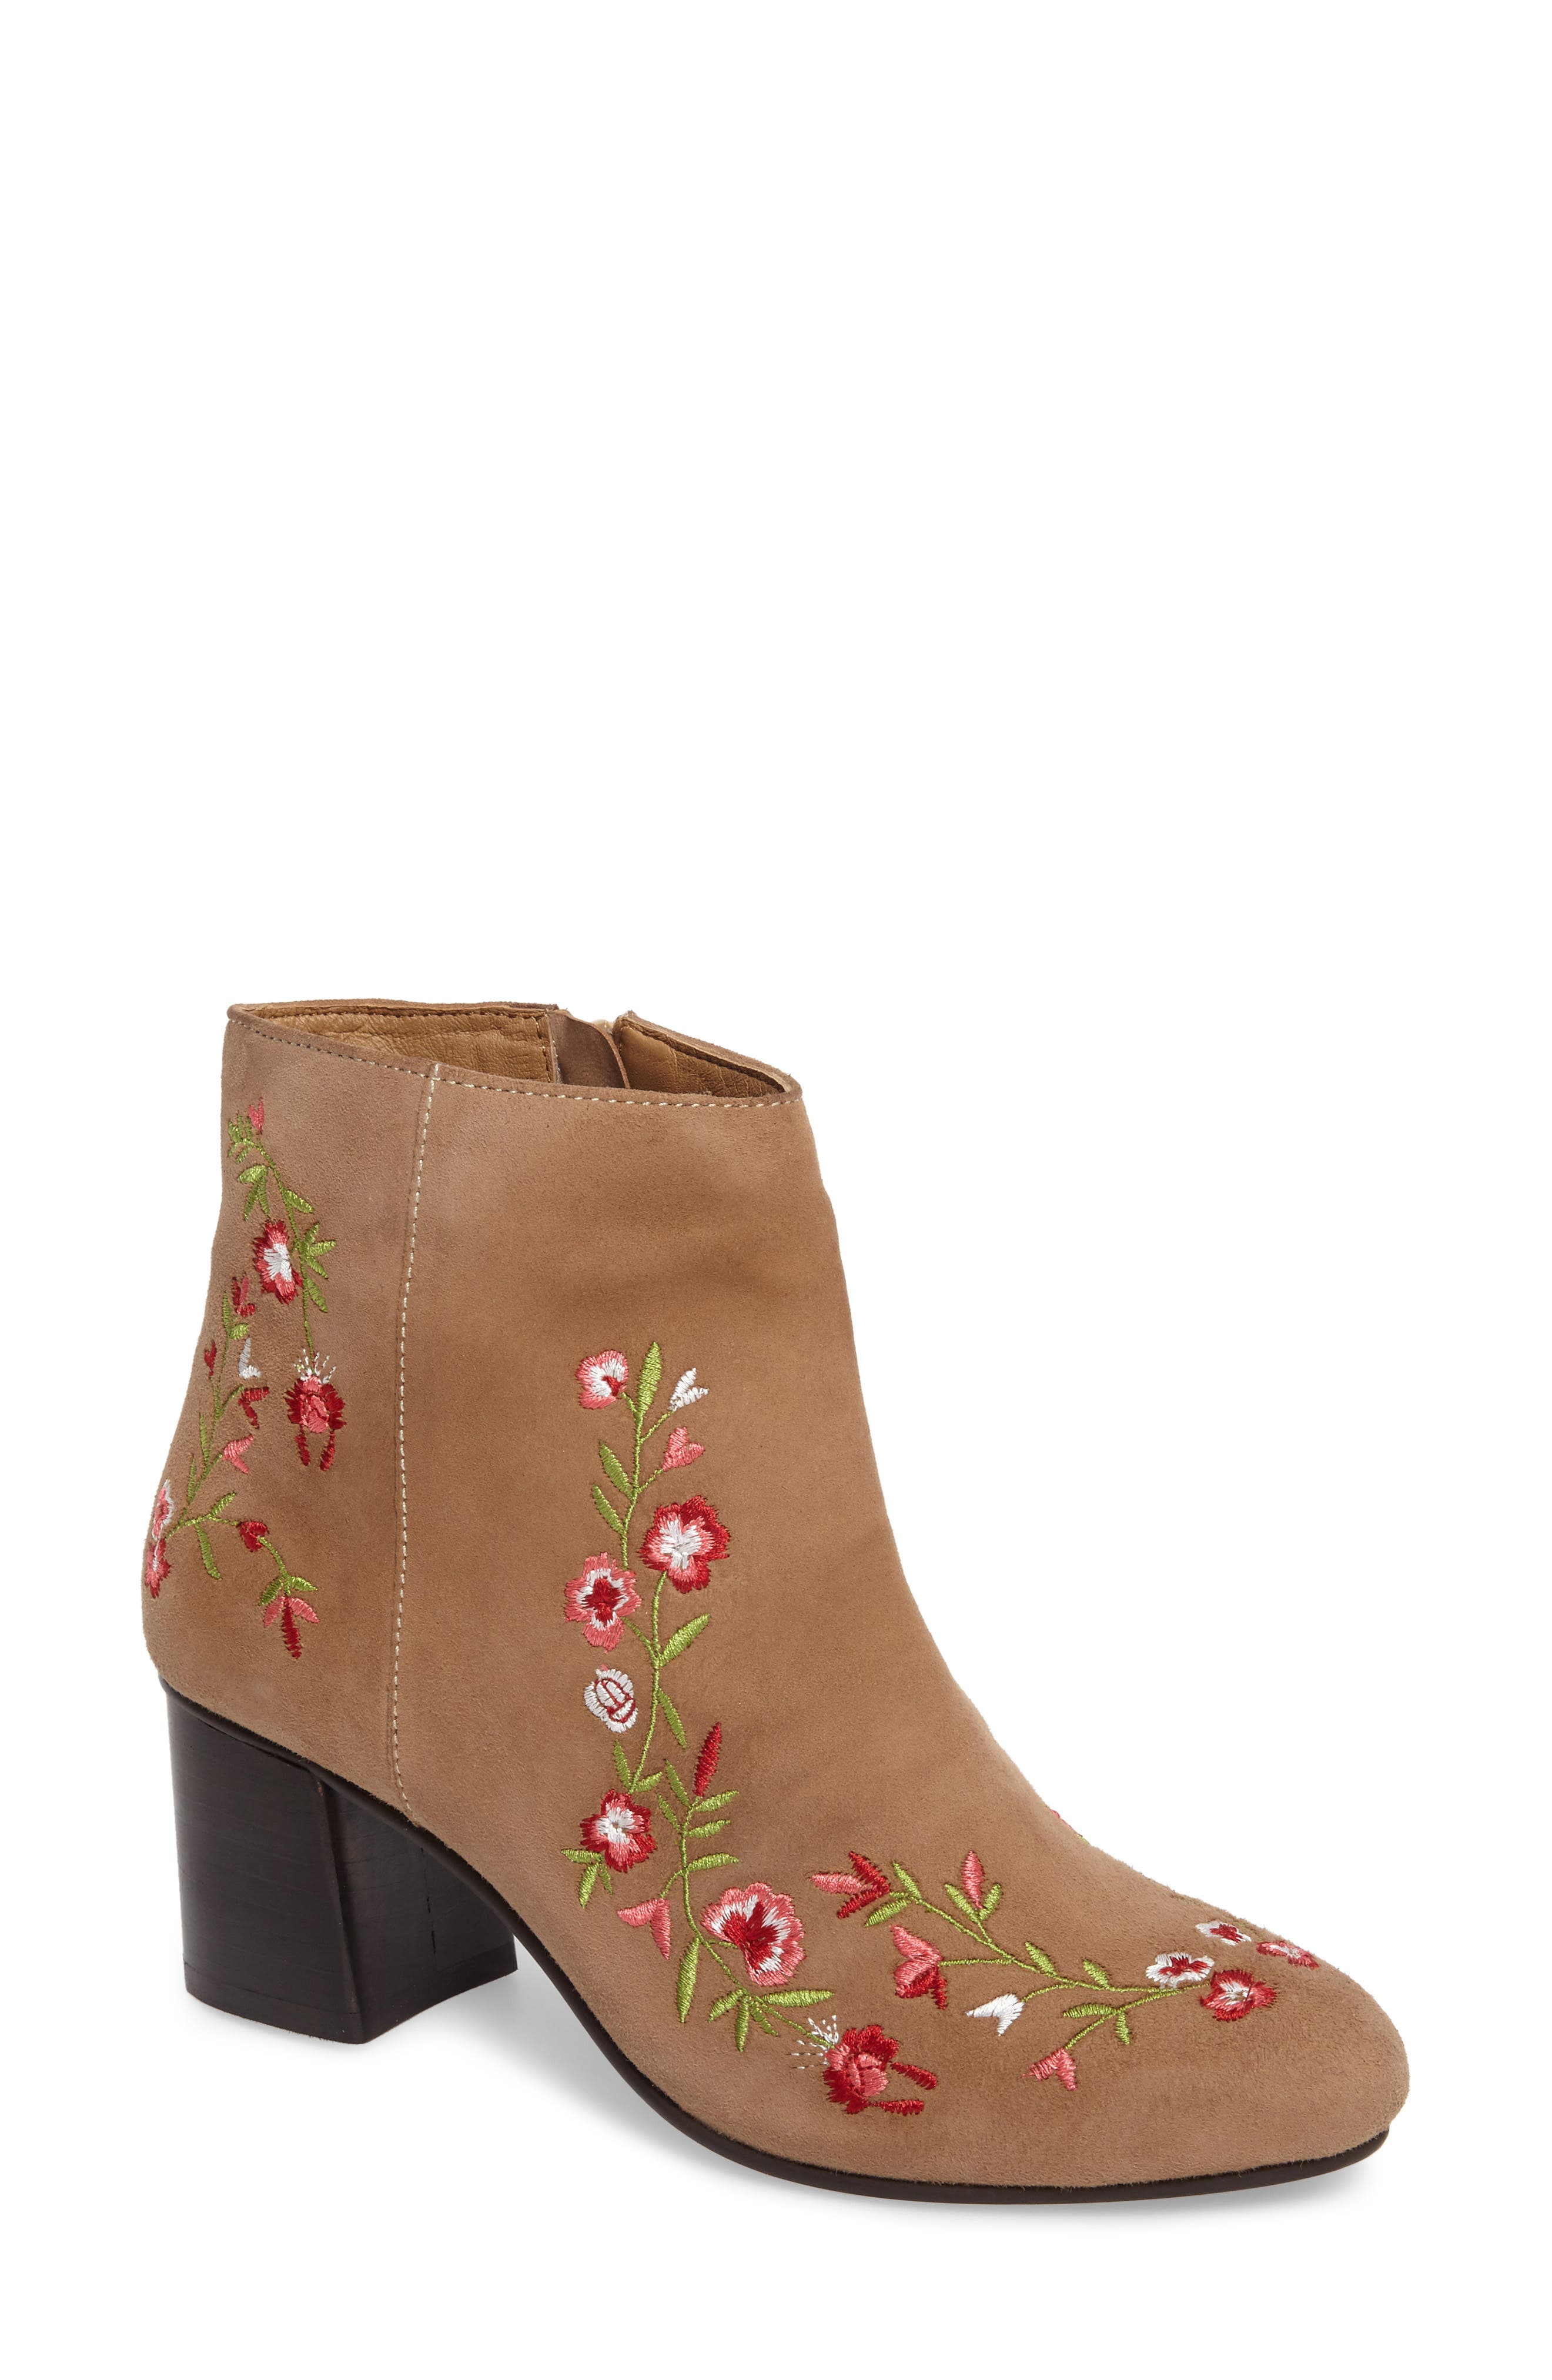 Veronaa Embroidered Bootie,                             Main thumbnail 1, color,                             Tan Suede